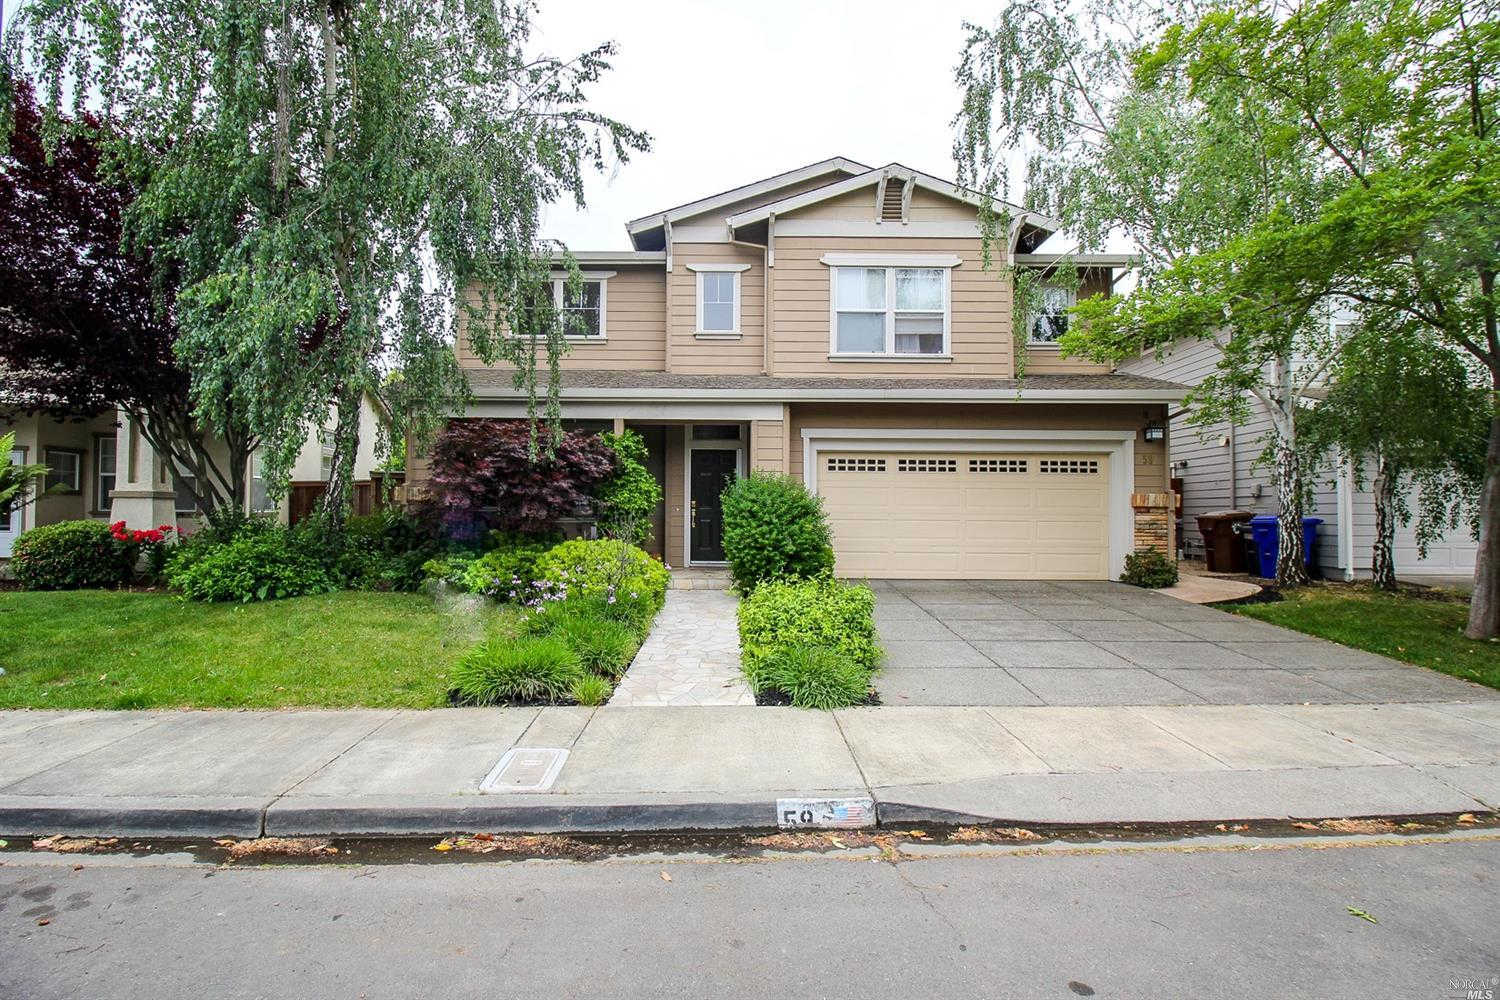 59 Summerbrooke Circle, Napa, CA 94558 now has a new price of $759,000!